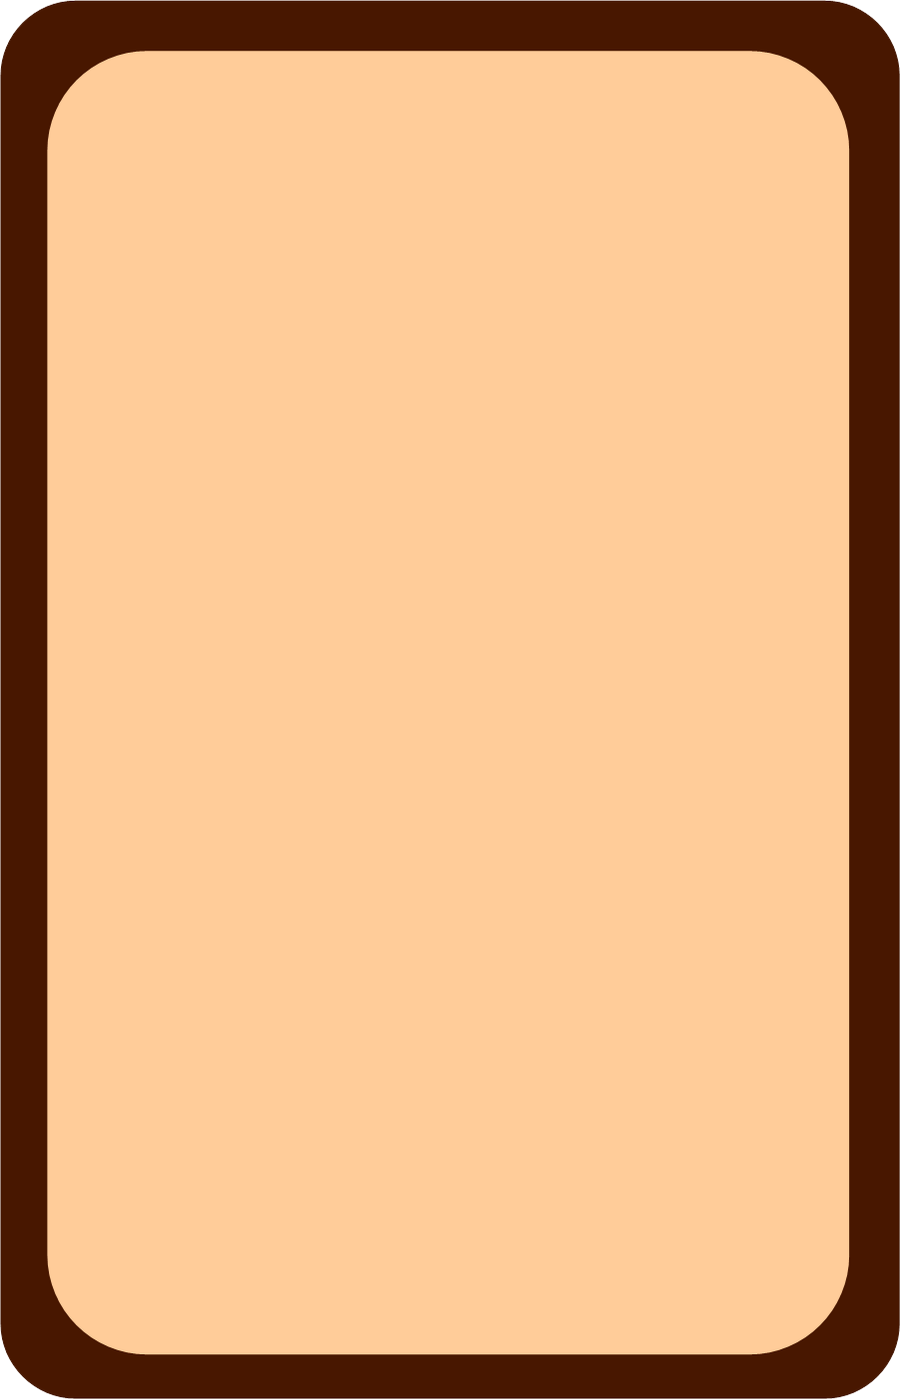 Blank Munchkin treasure card template by cornixt on DeviantArt